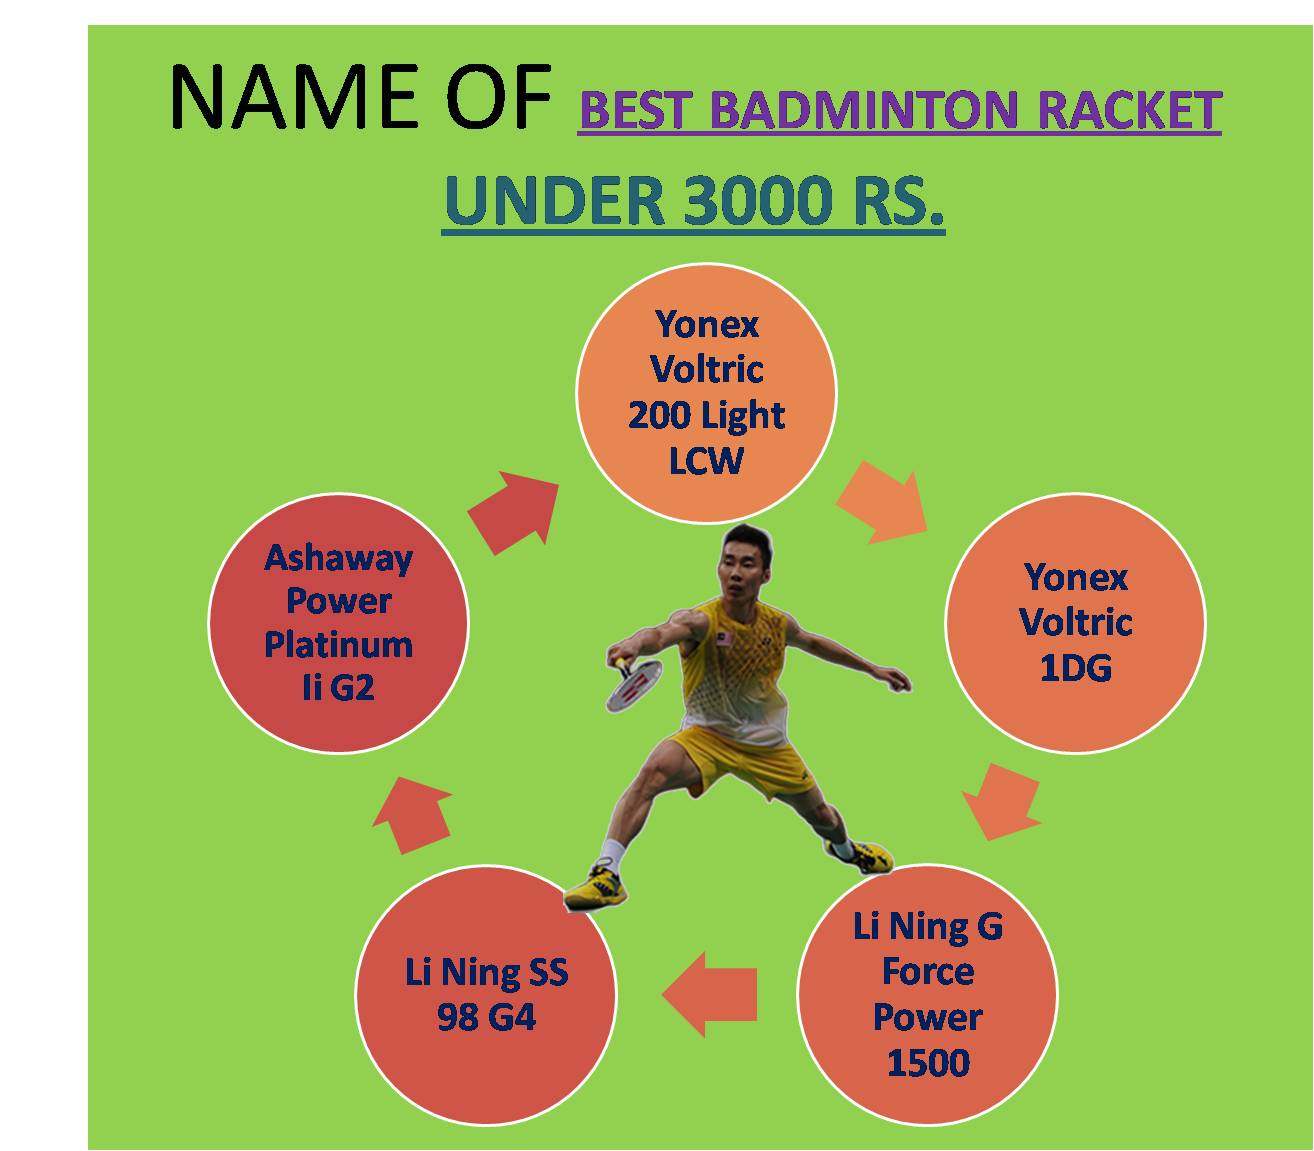 NAME OF BEST BADMINTON RACKET UNDER 3000